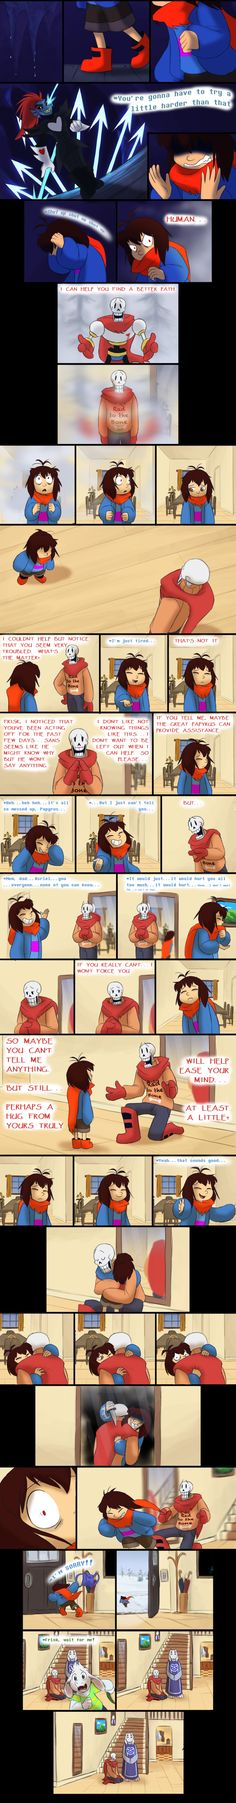 Endertale - Page 21 by TC-96 on DeviantArt